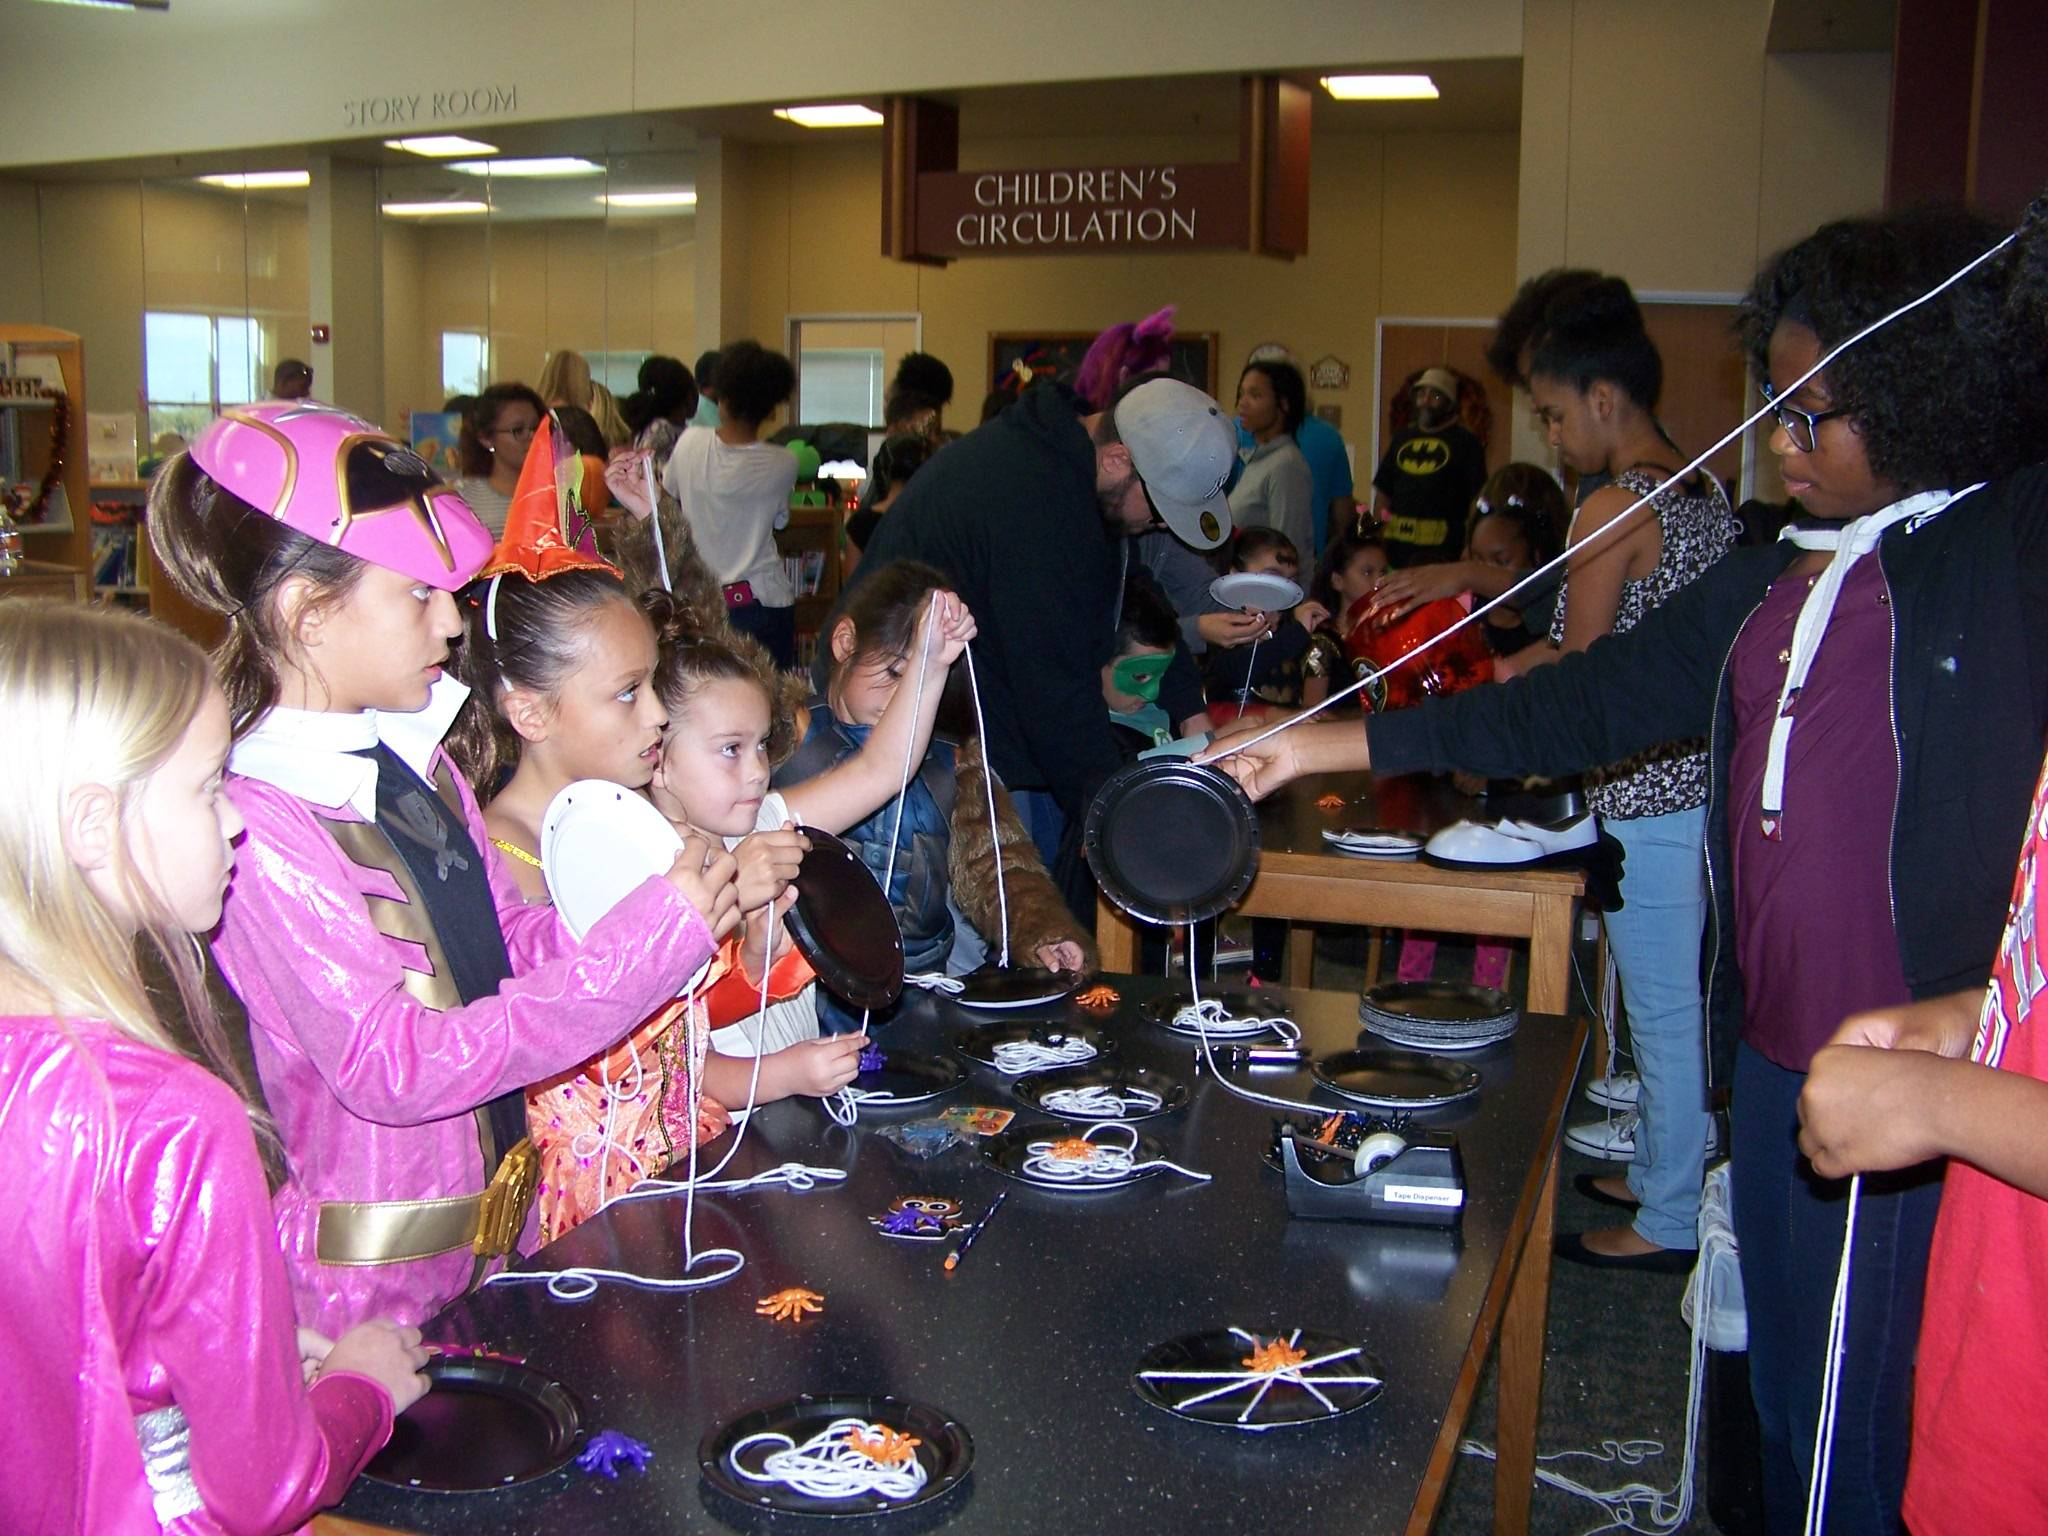 Builders club member helping kids with their Halloween crafts